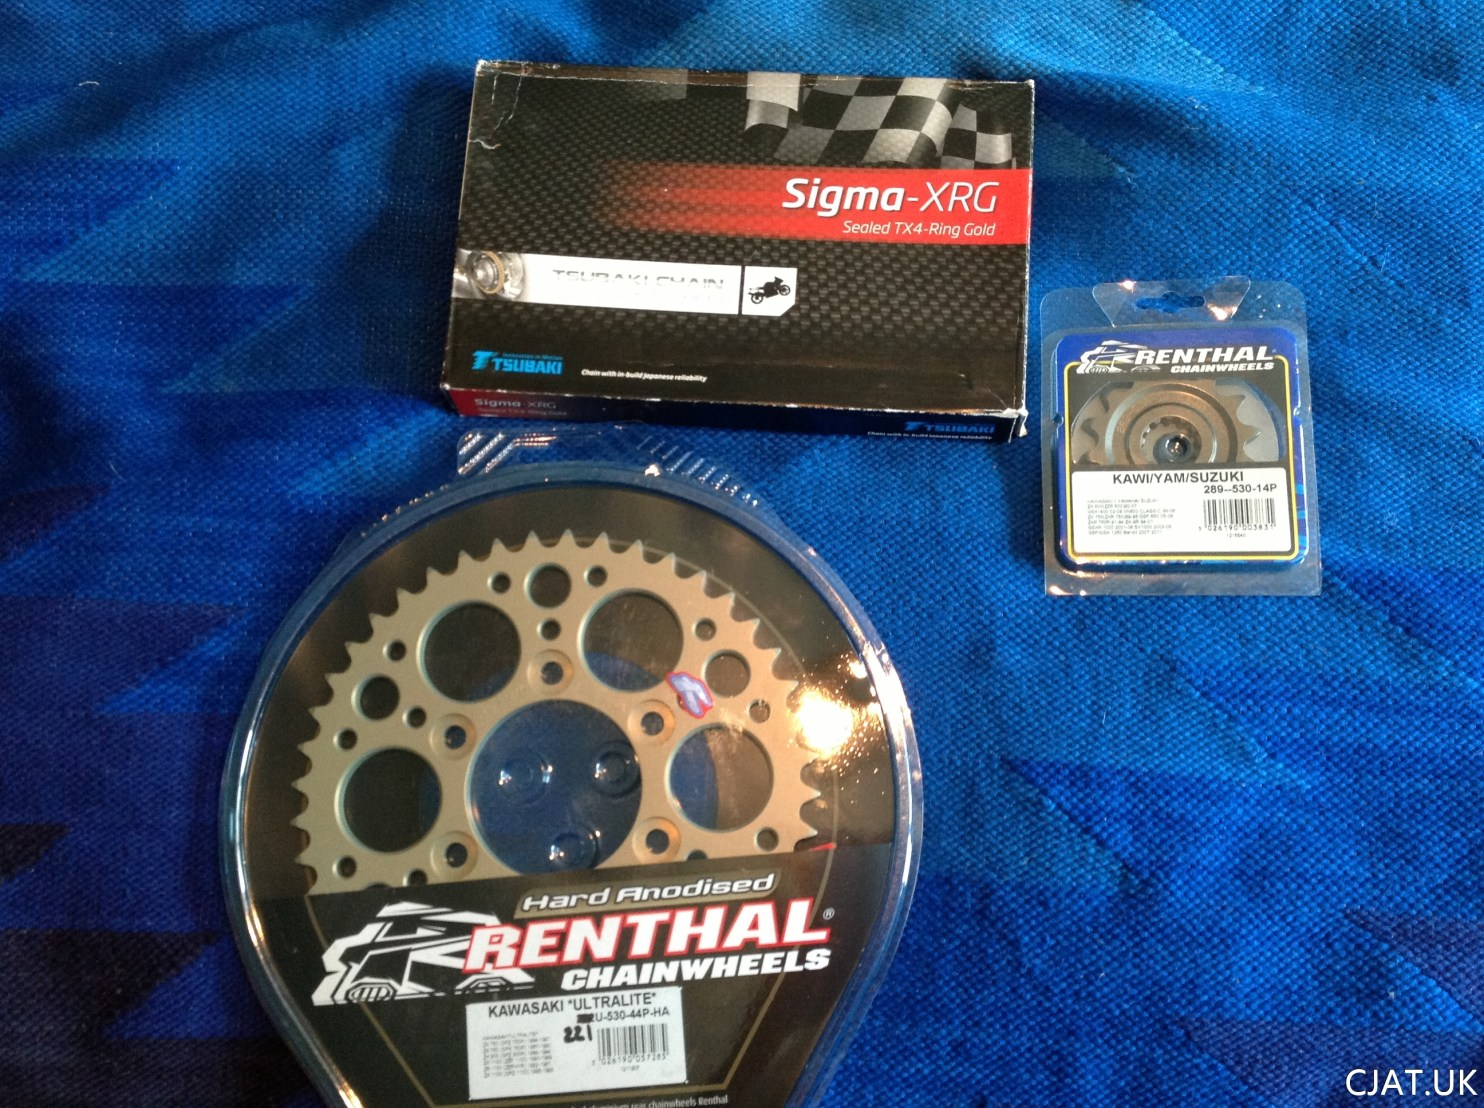 suzuki rf900 renthal sprockets with sigma xrg chain